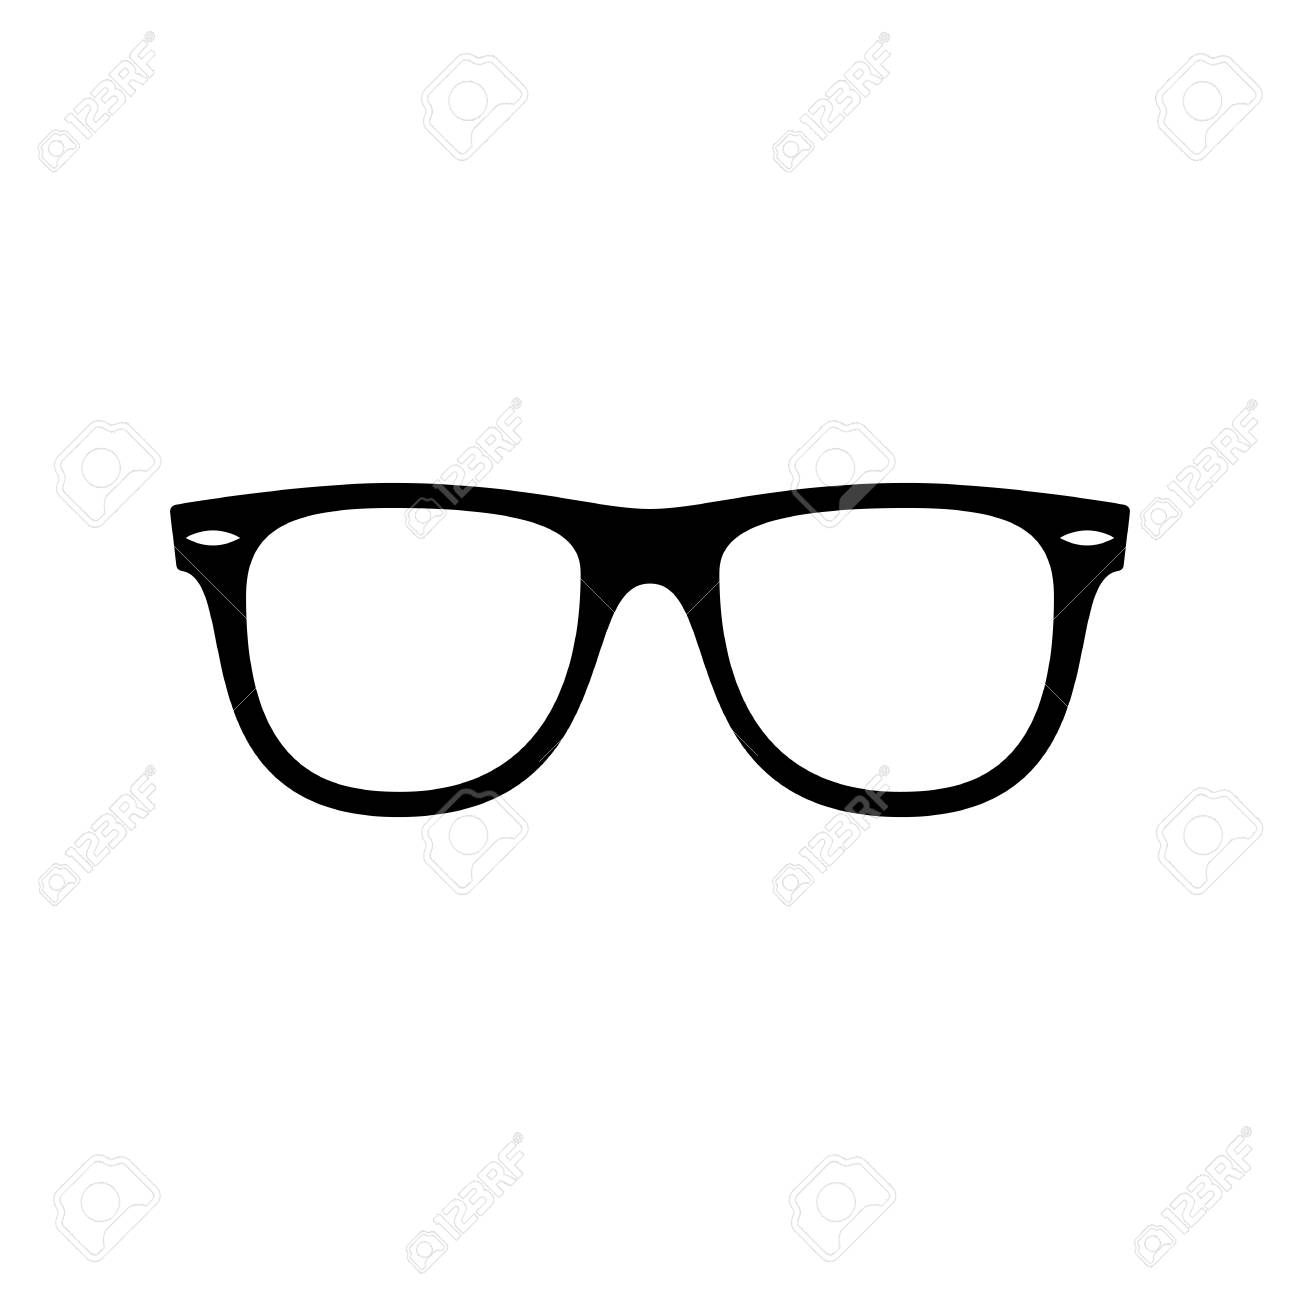 Sunglasses icon  Black, minimalist icon isolated on white background